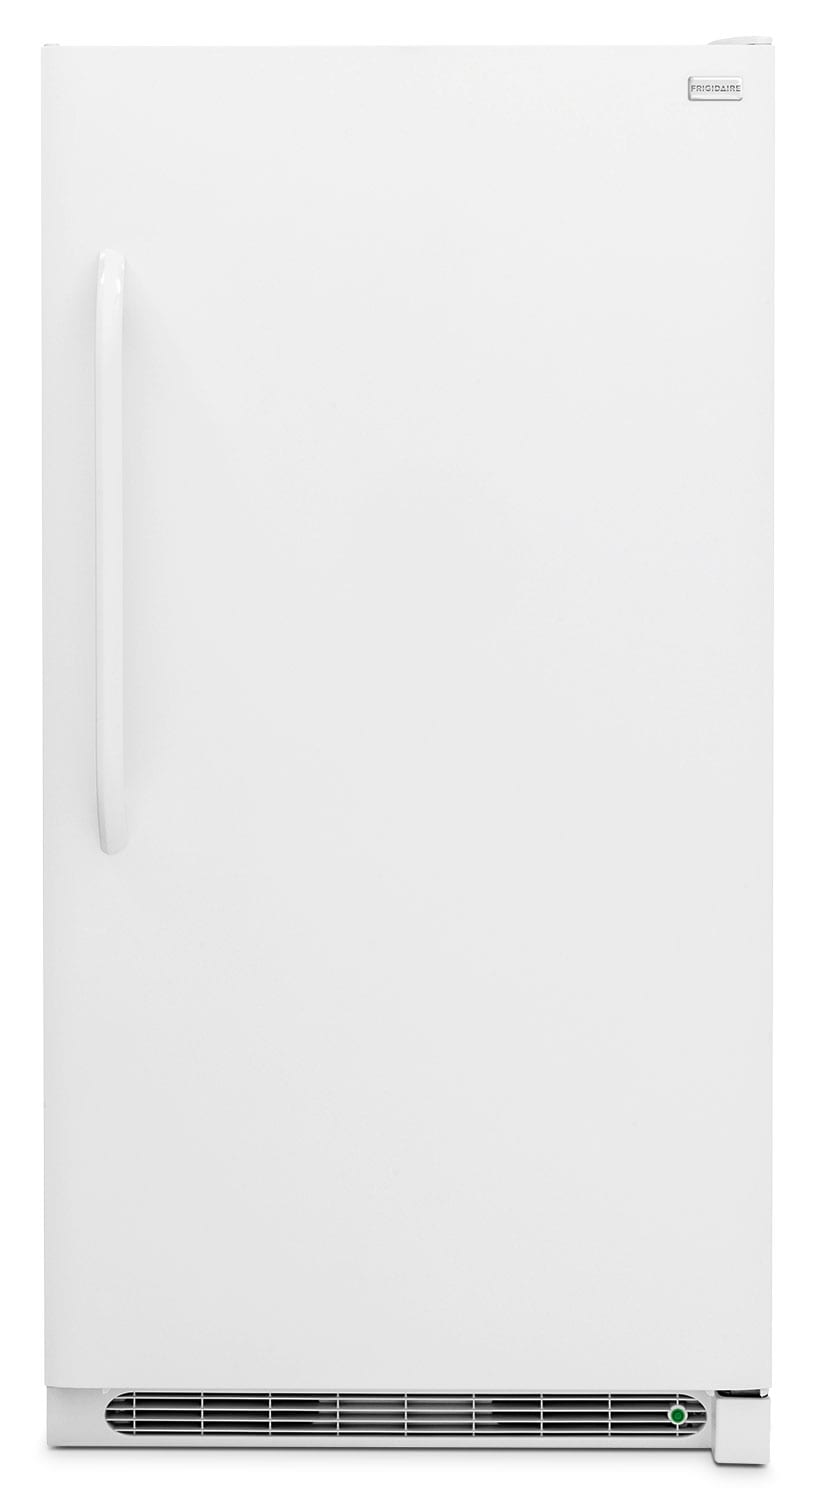 Refrigerators and Freezers - Frigidaire White Upright Freezer (17 Cu. Ft.) - FFFU17M1QW